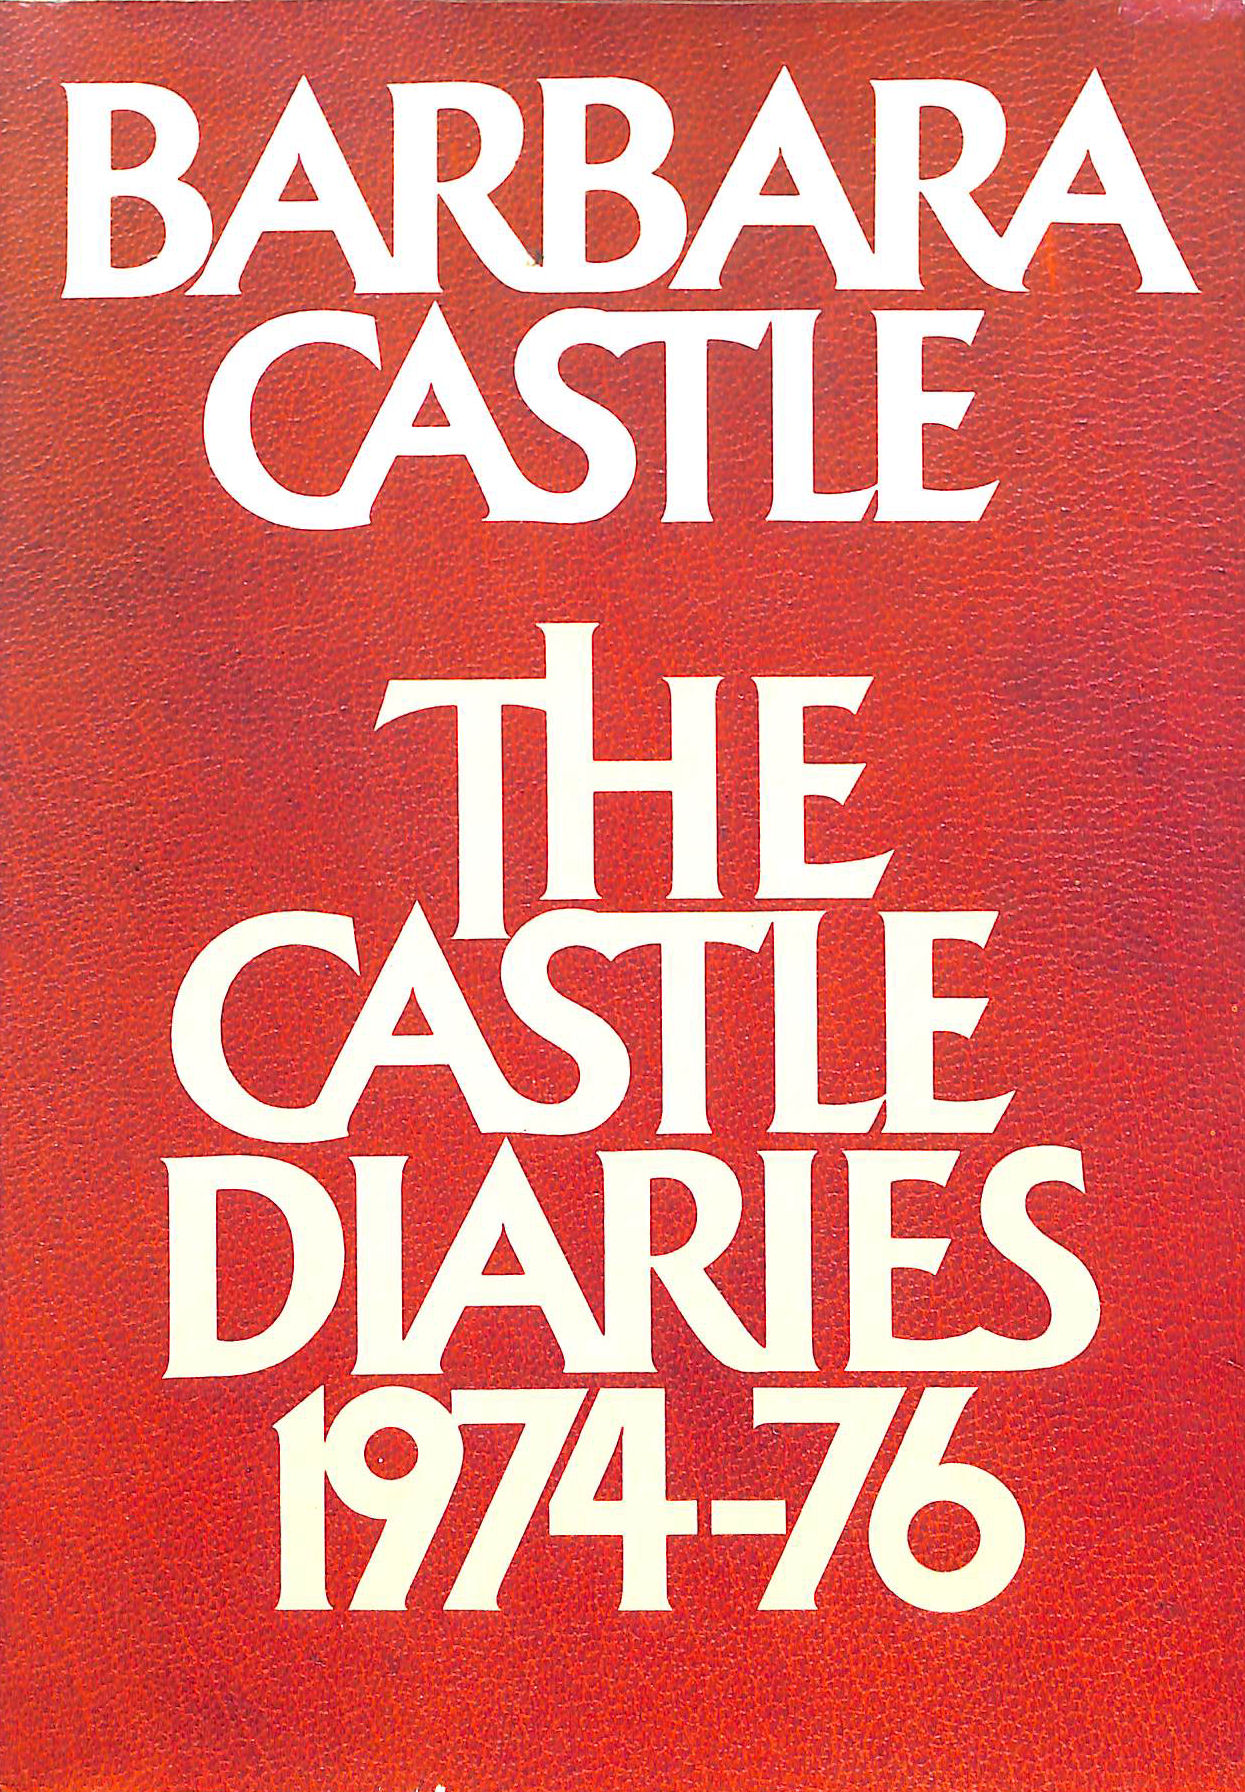 Image for The Castle Diaries 1974-76